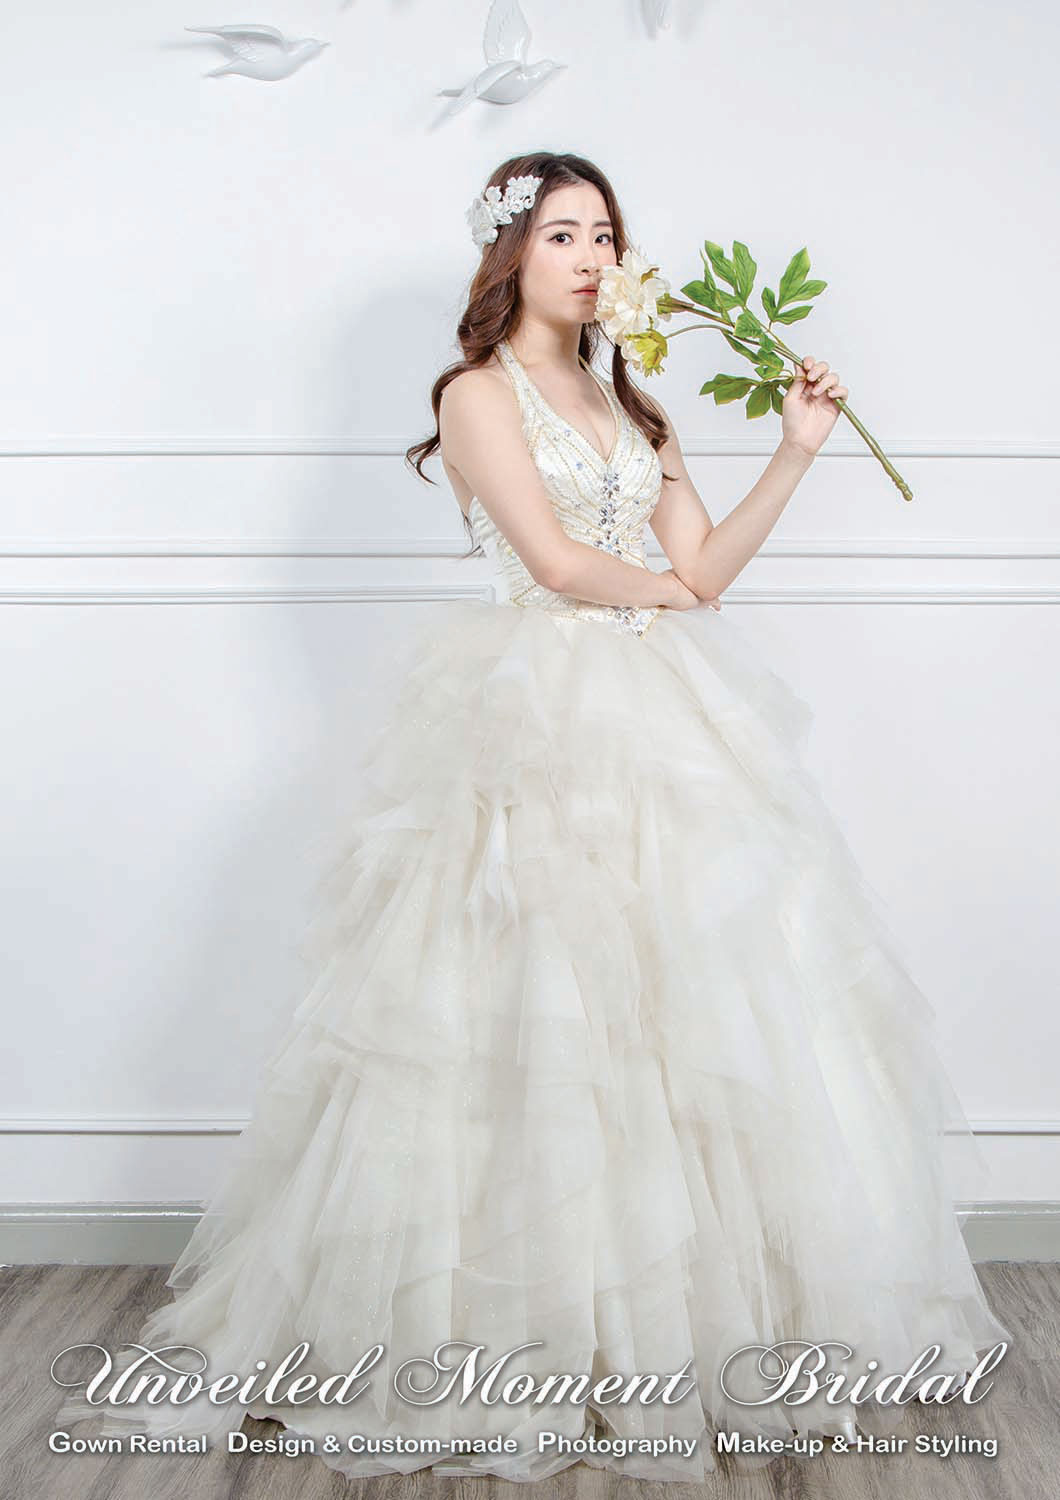 Deep V halter neckline wedding gown with beaded bodice floor length ruffled skirt 掛頸肩帶, Deep-V, 釘珠, 多層紗傘裙款婚紗